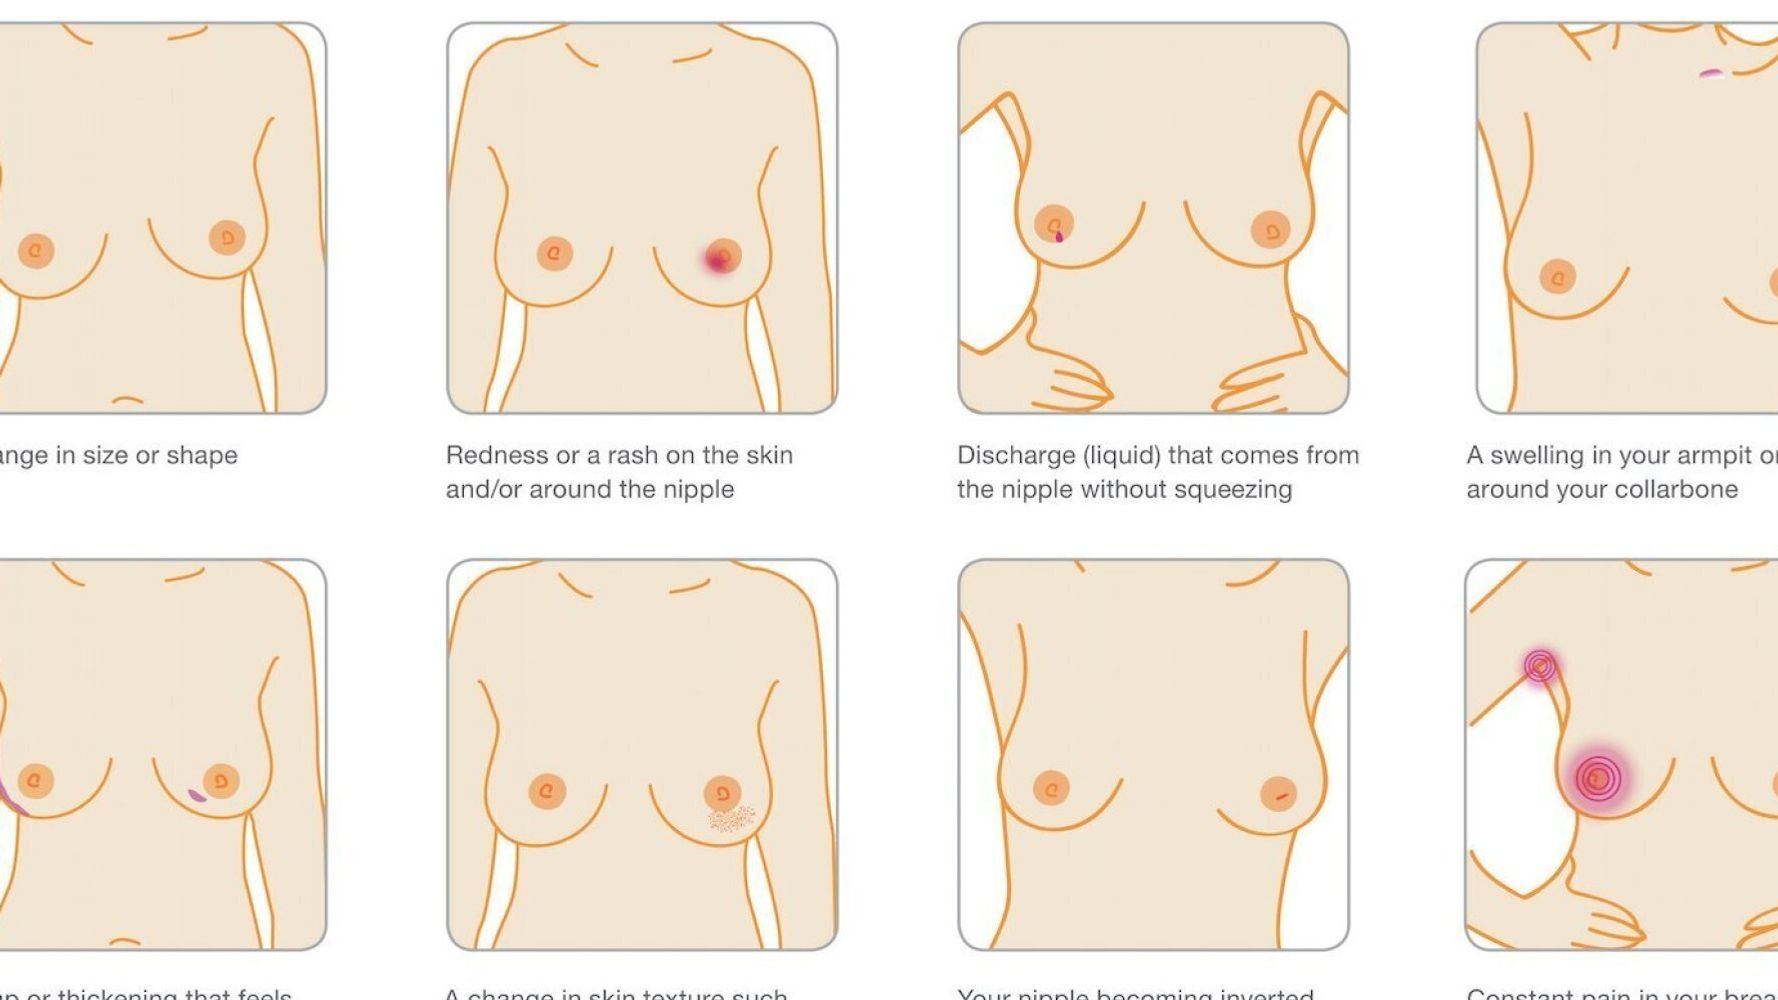 Breast Cancer Symptoms Are More Than A Lump Here Are The Other